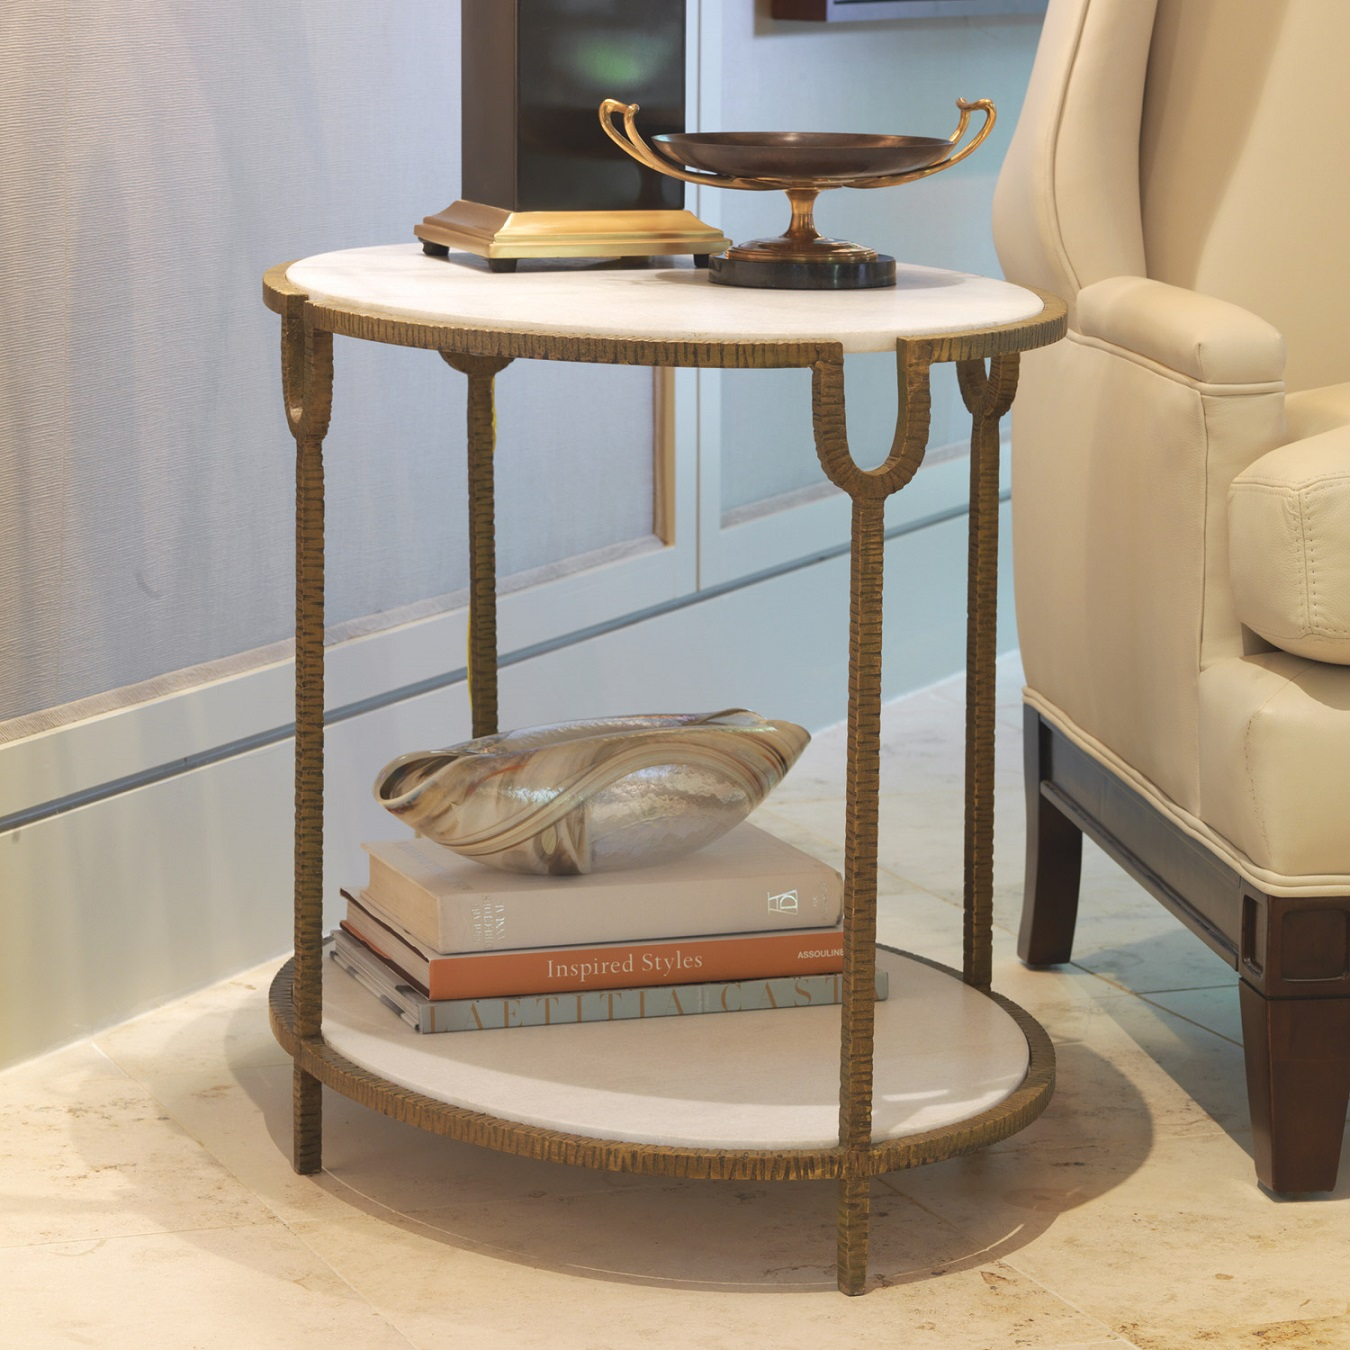 small table tables end side gold hammered accent limited production design stock elegant white stone iron base finish inches partner console coffee with glass tops make your own